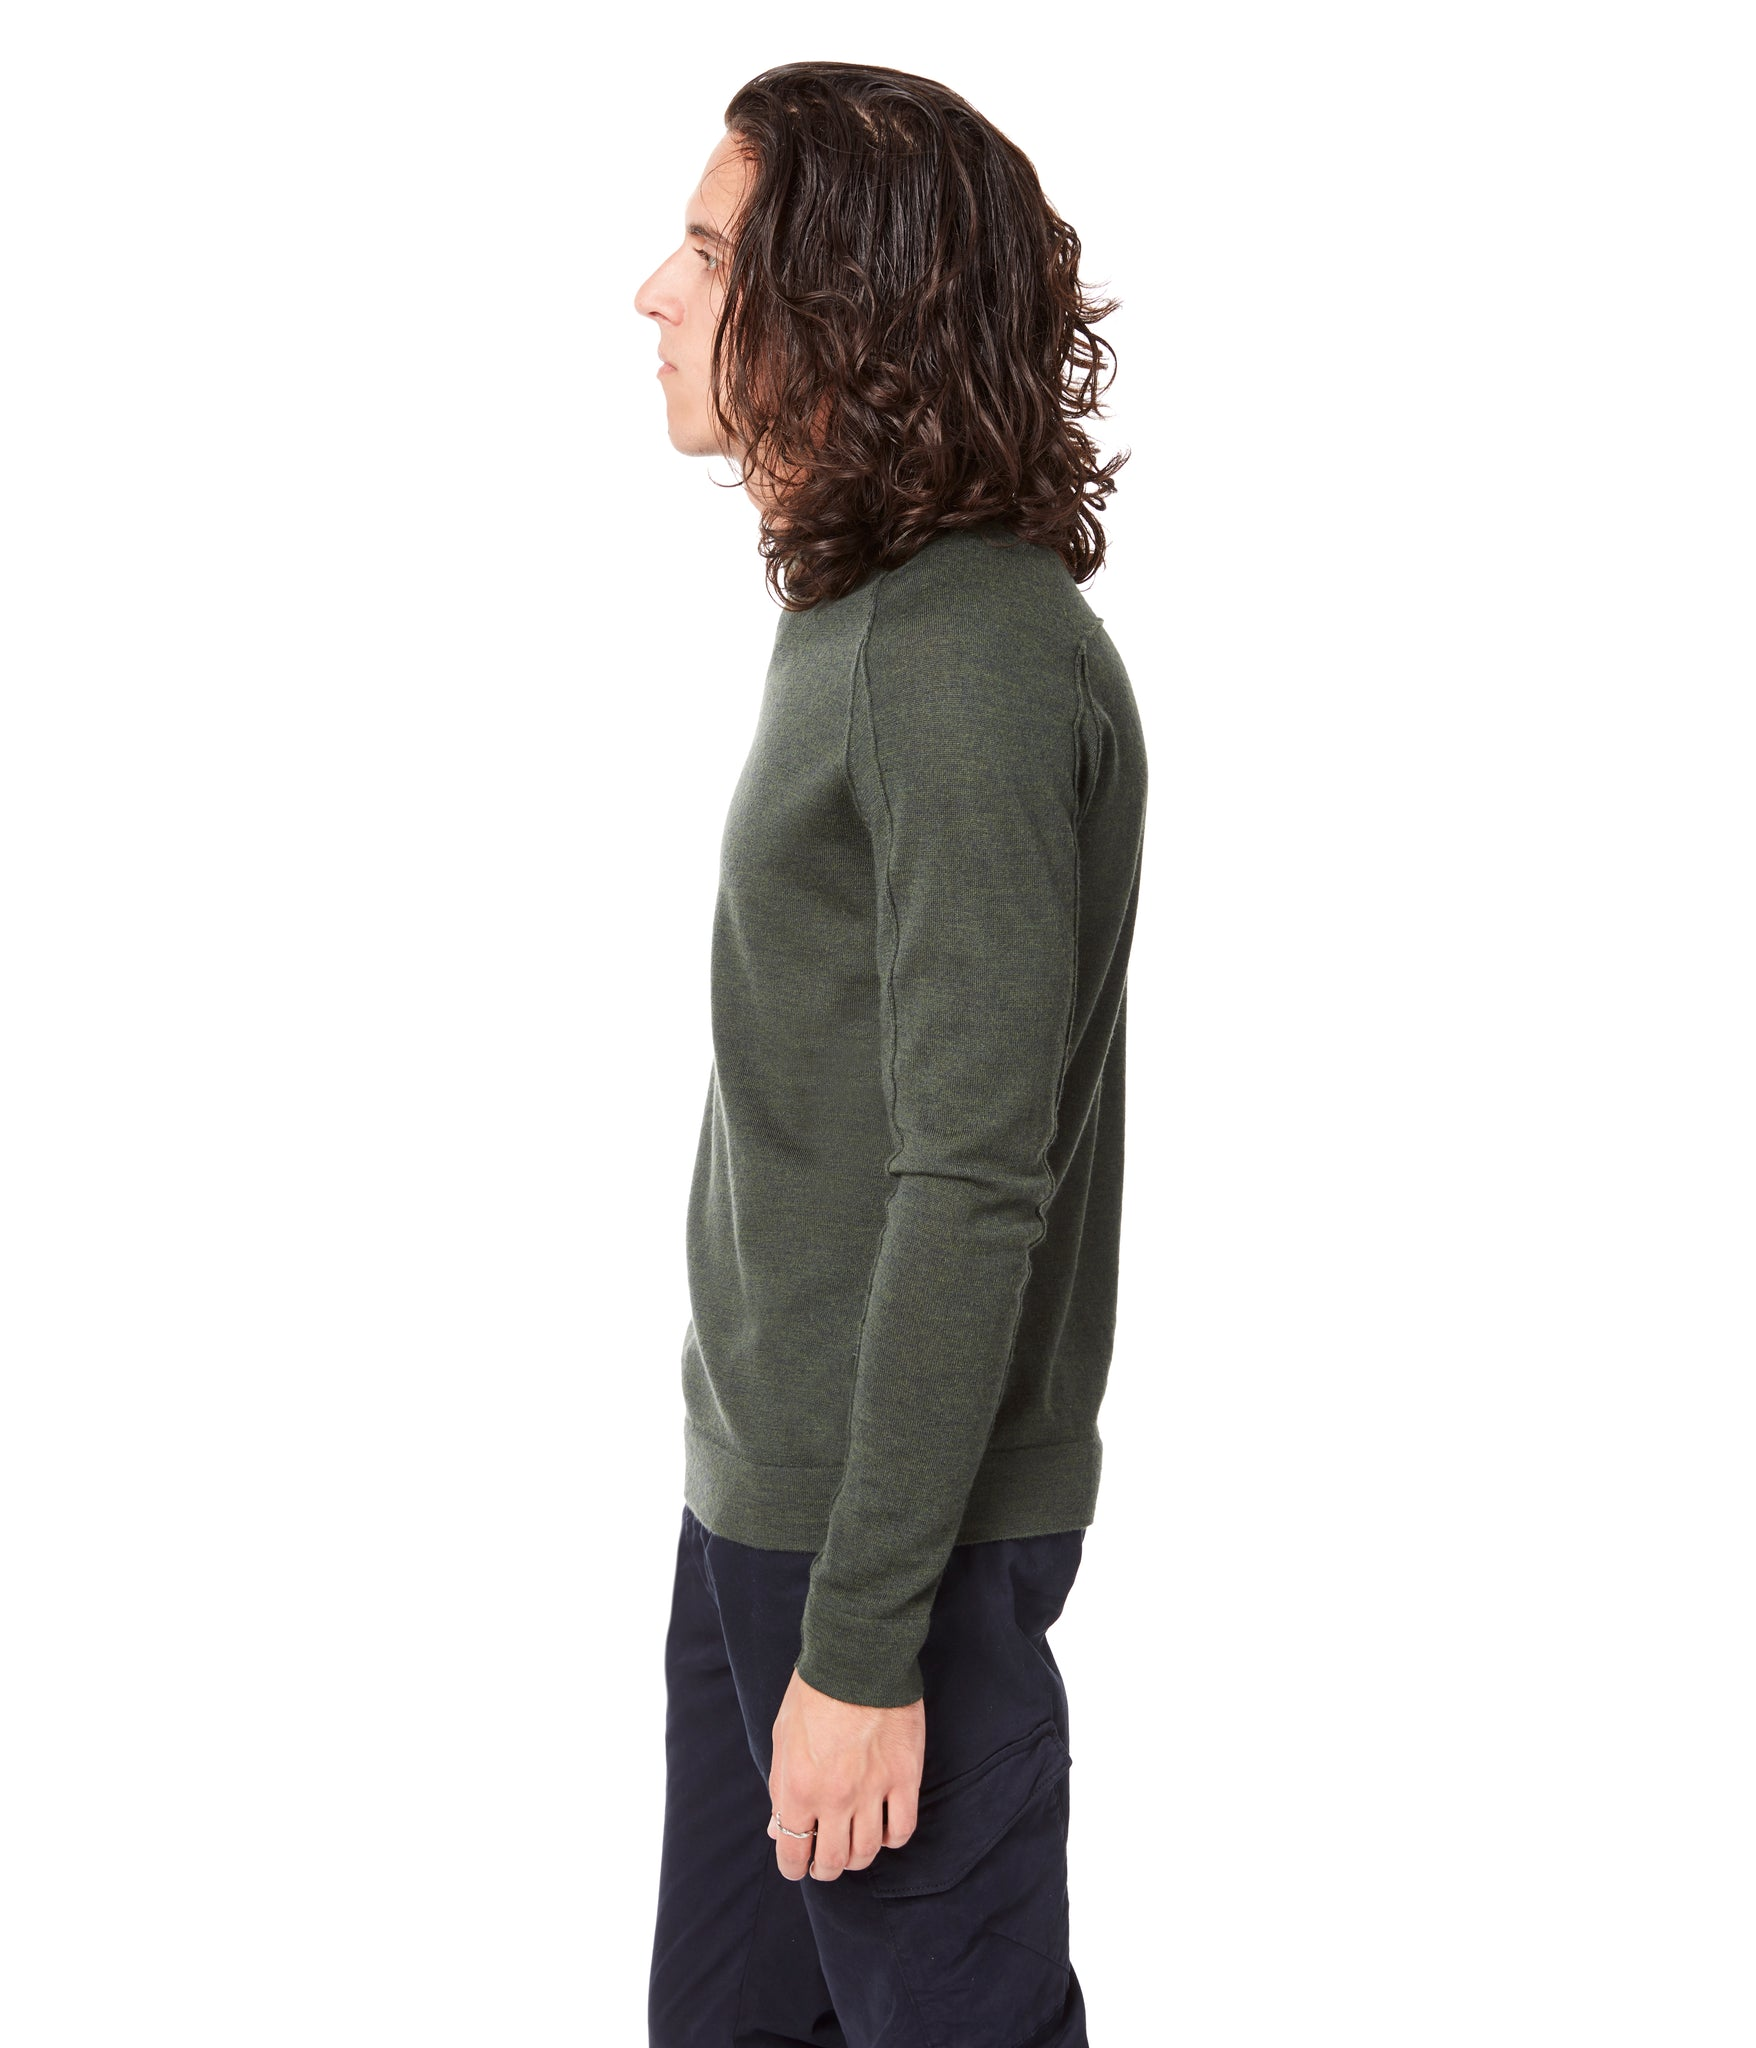 MVP V-Notch Sweater - Garden